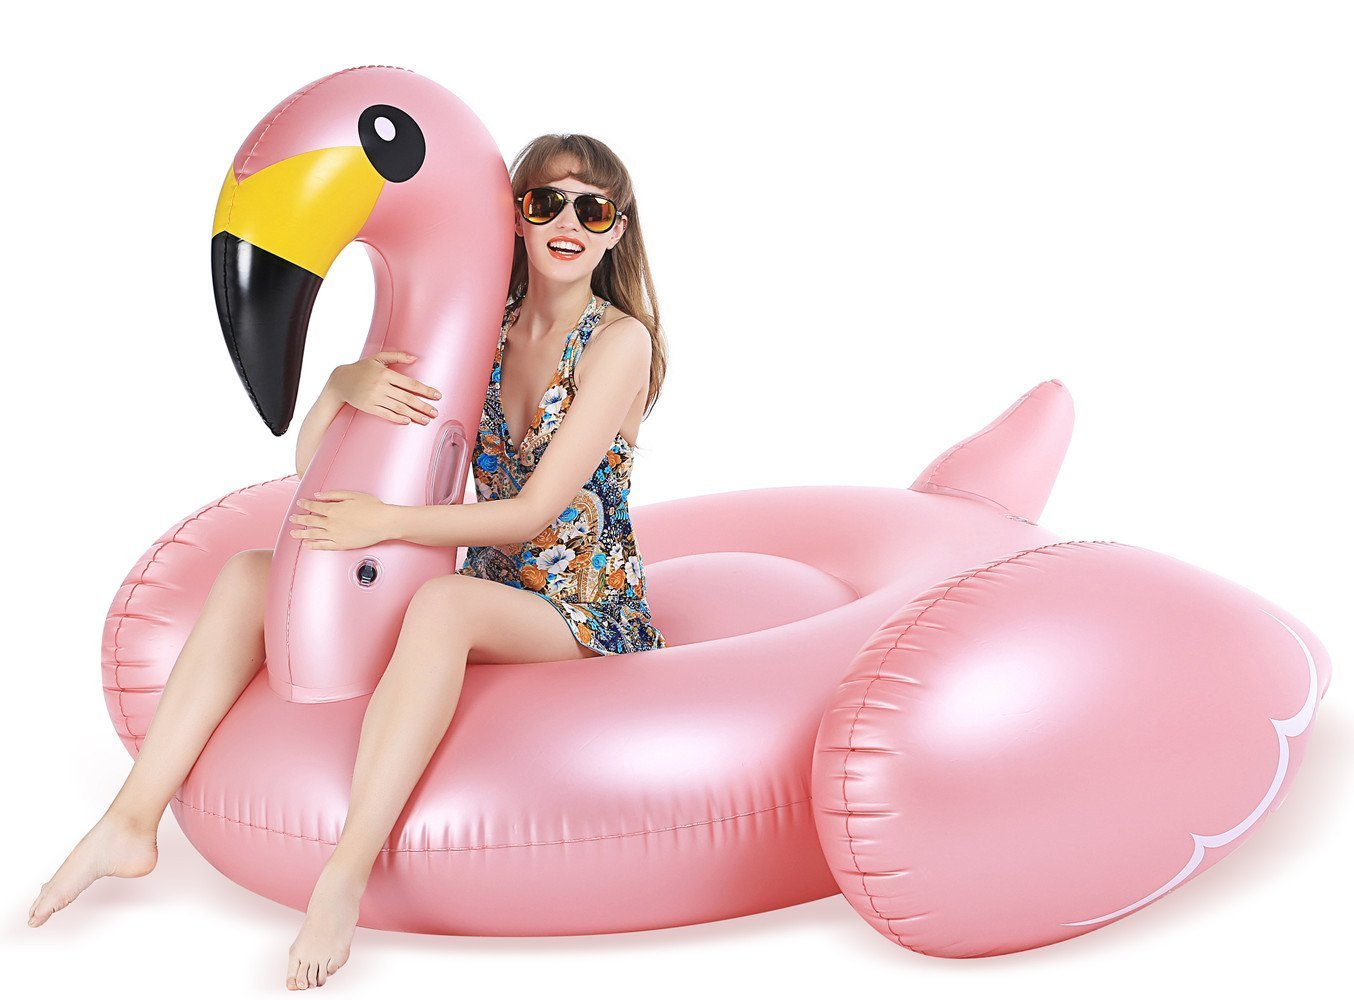 Jasonwell Giant Inflatable Flamingo Pool Float with Rapid Valves Summer Beach Swimming Pool Party Lounge Raft Decorations Toys for Adults Kids XXXX-Large